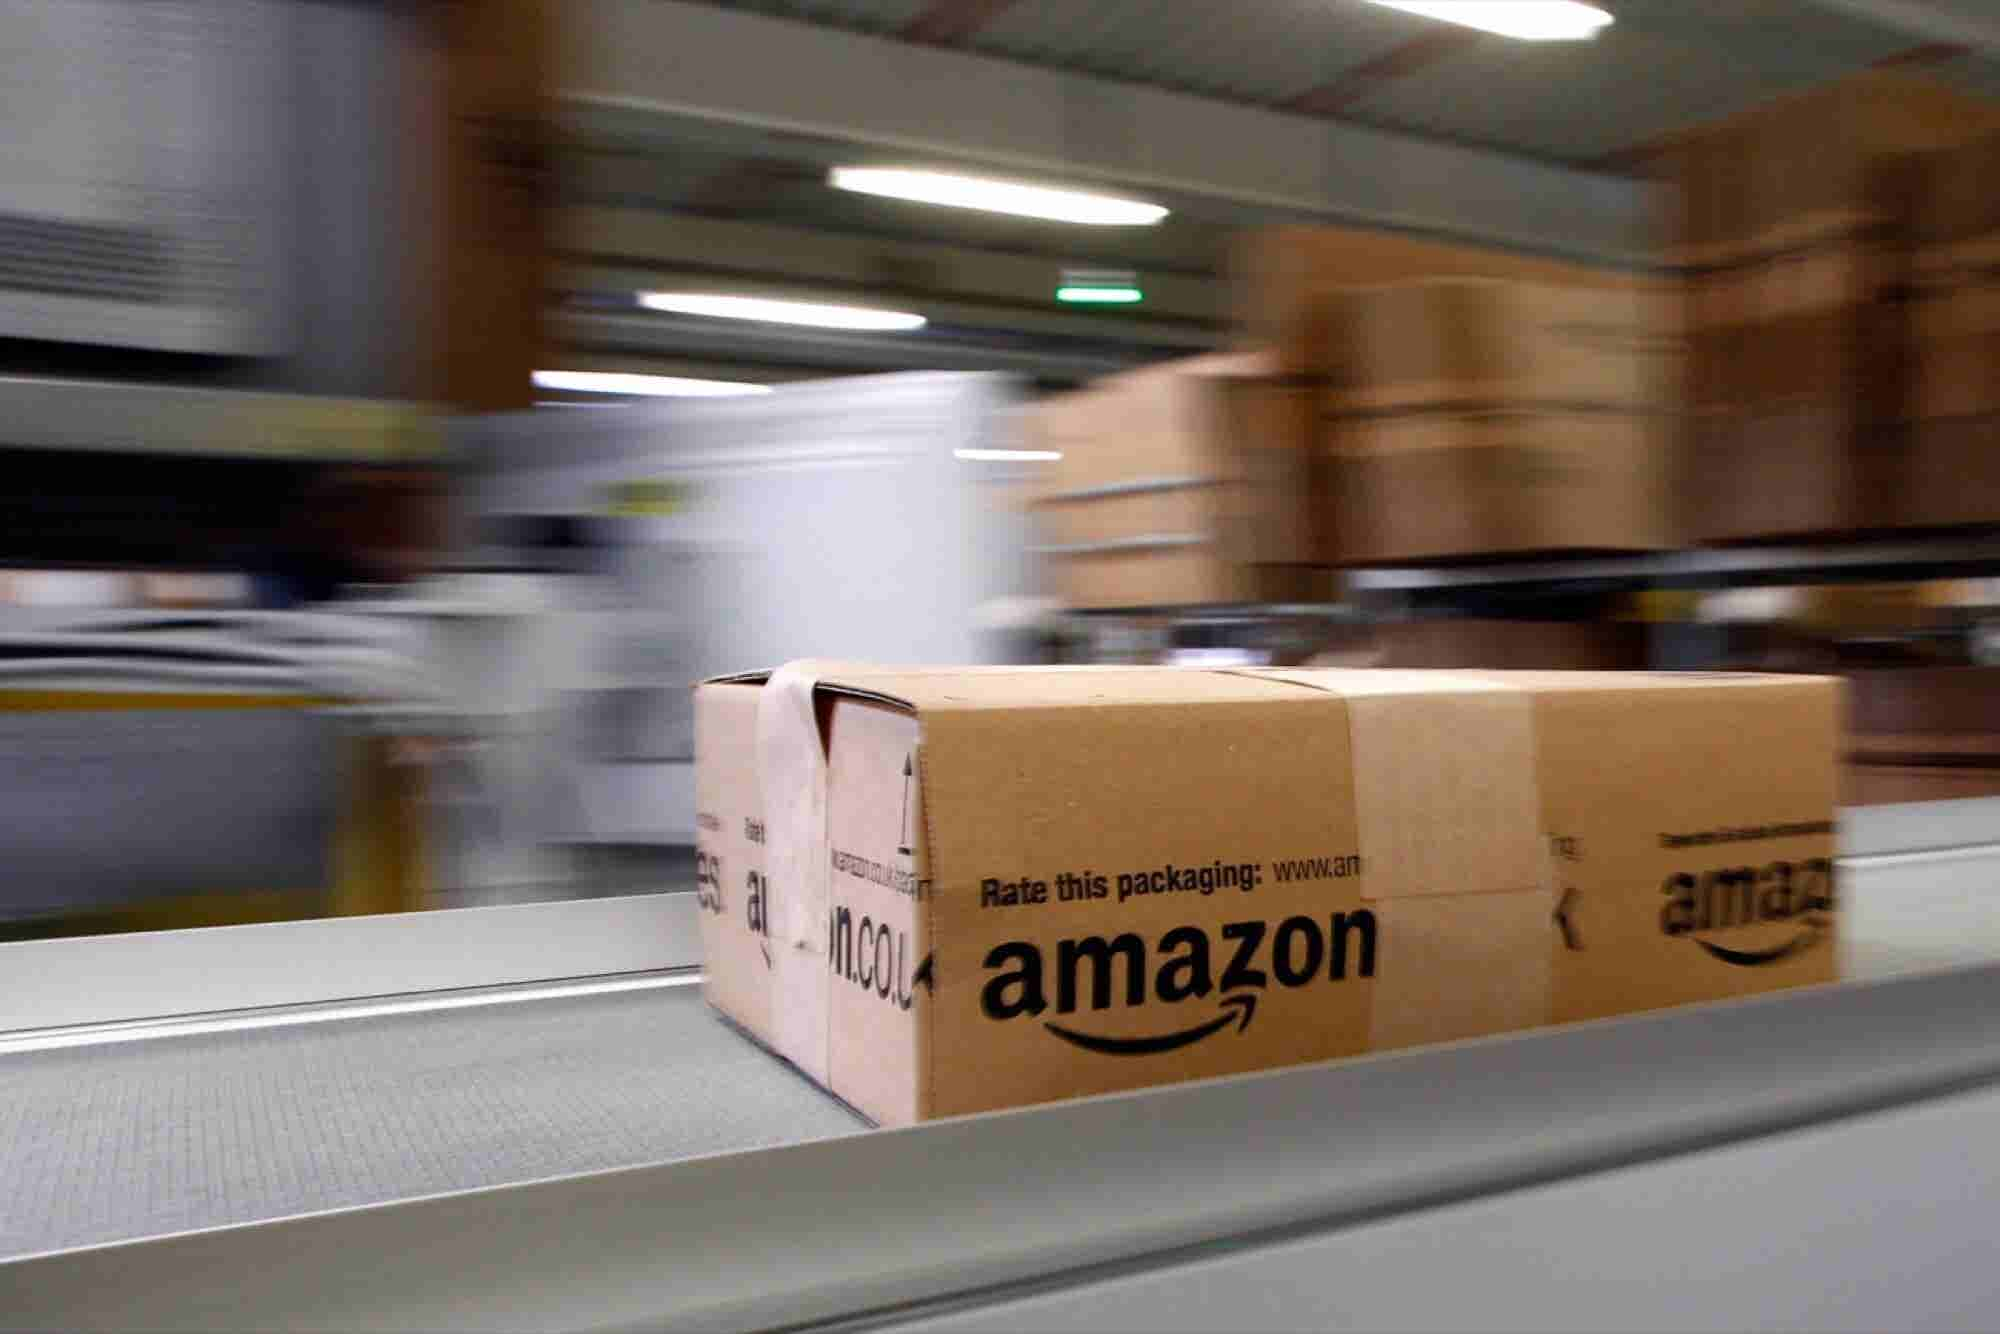 Why We Shouldn't Hate on Amazon's Culture